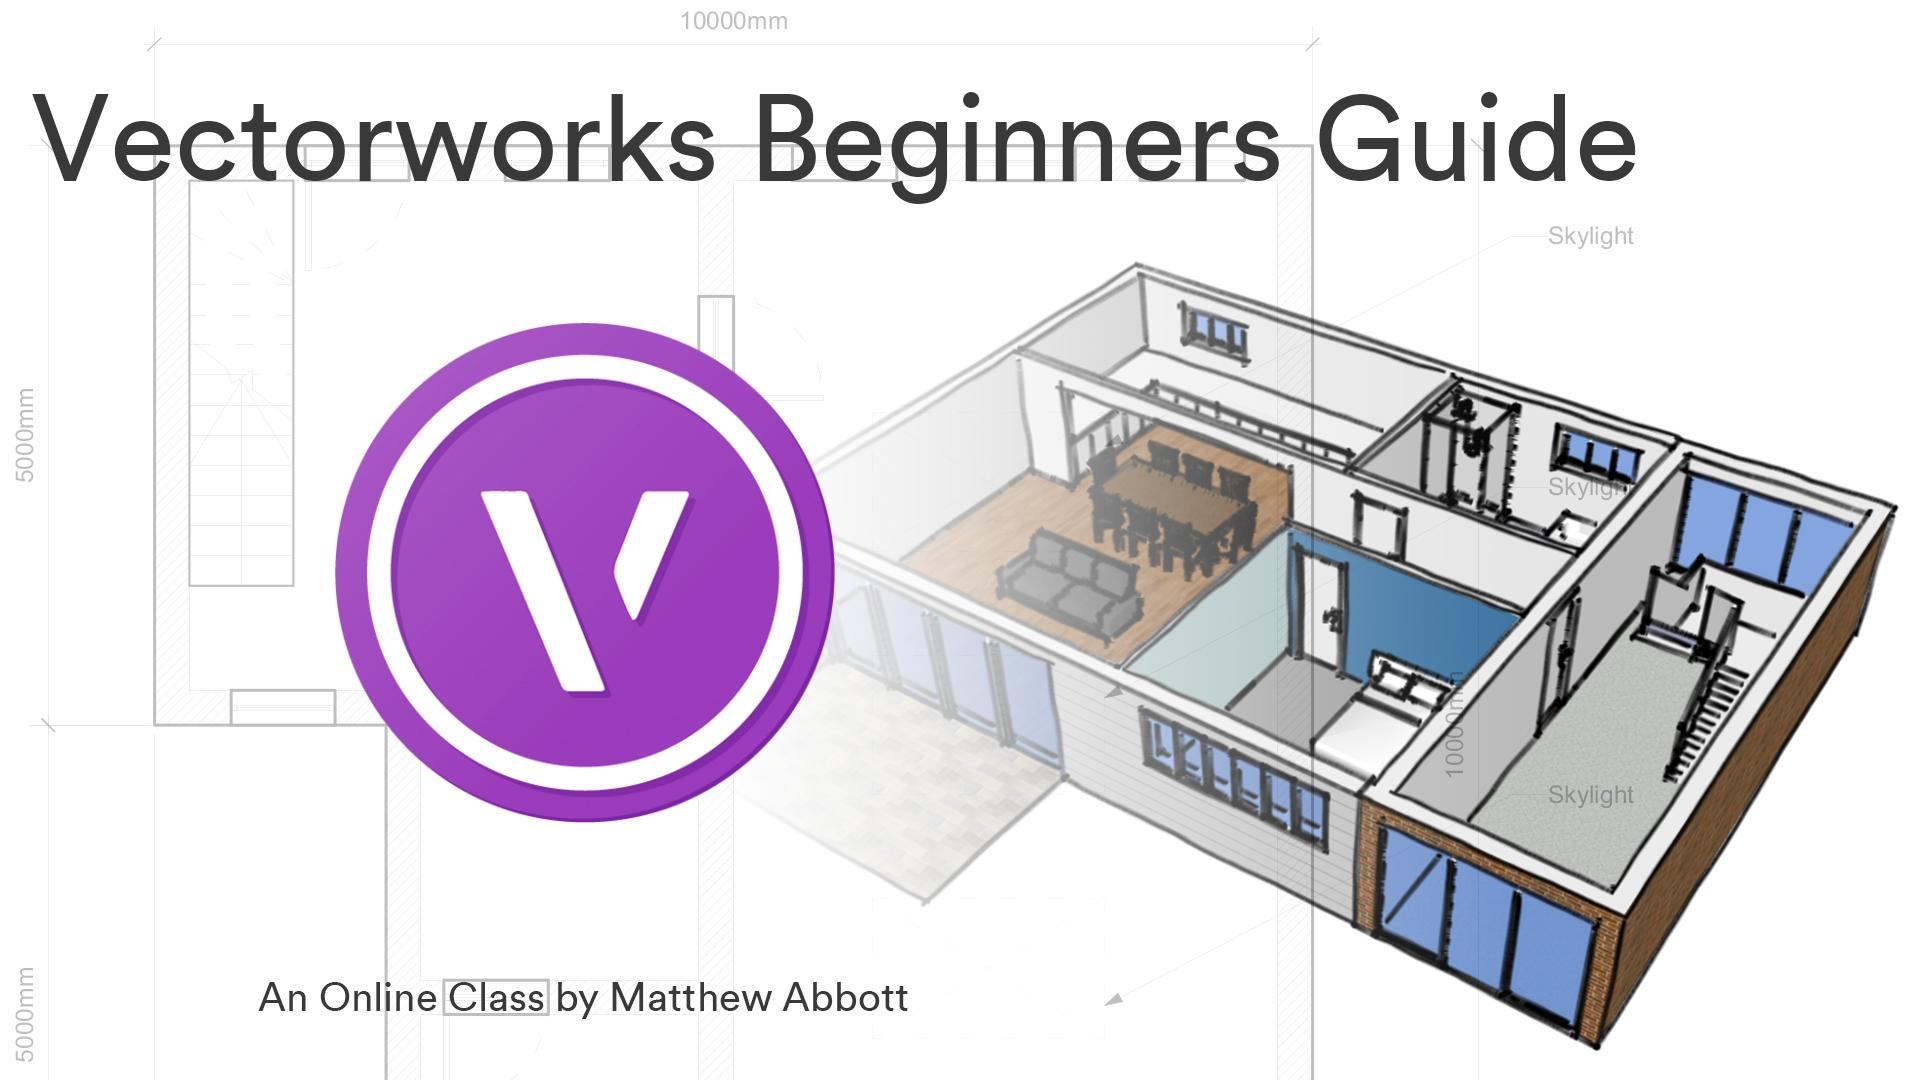 Vectorworks an Introduction to 2D Drawing for Architects | Matthew